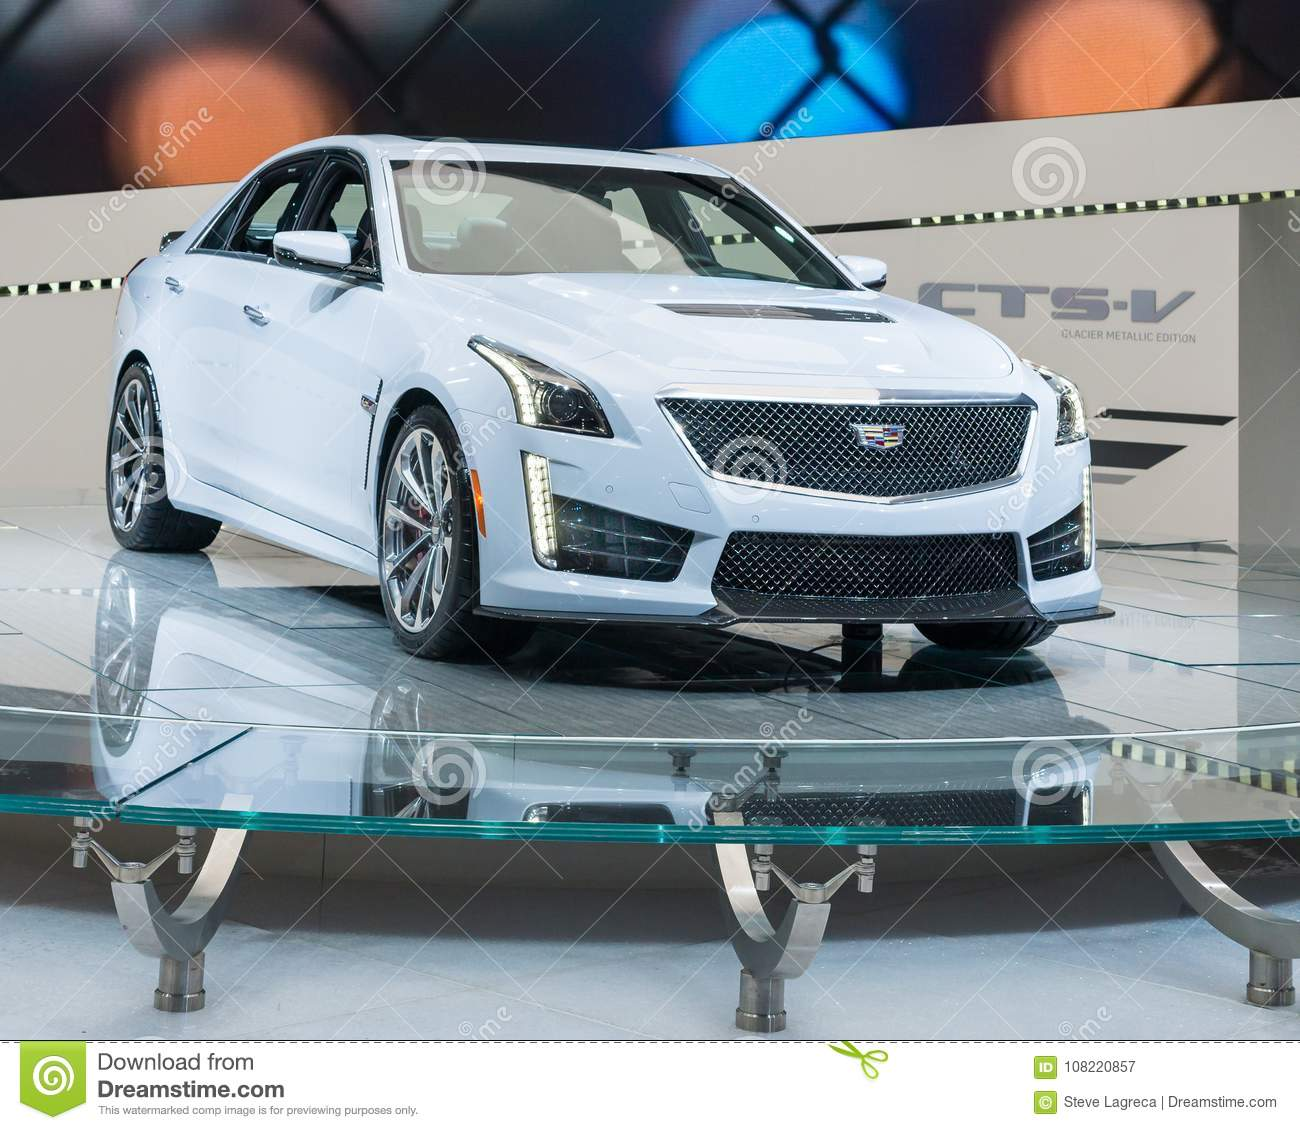 Cadillac 2018 Cts V Sedan: 2018 Cadillac CTS-V Limited Edition, NAIAS Editorial